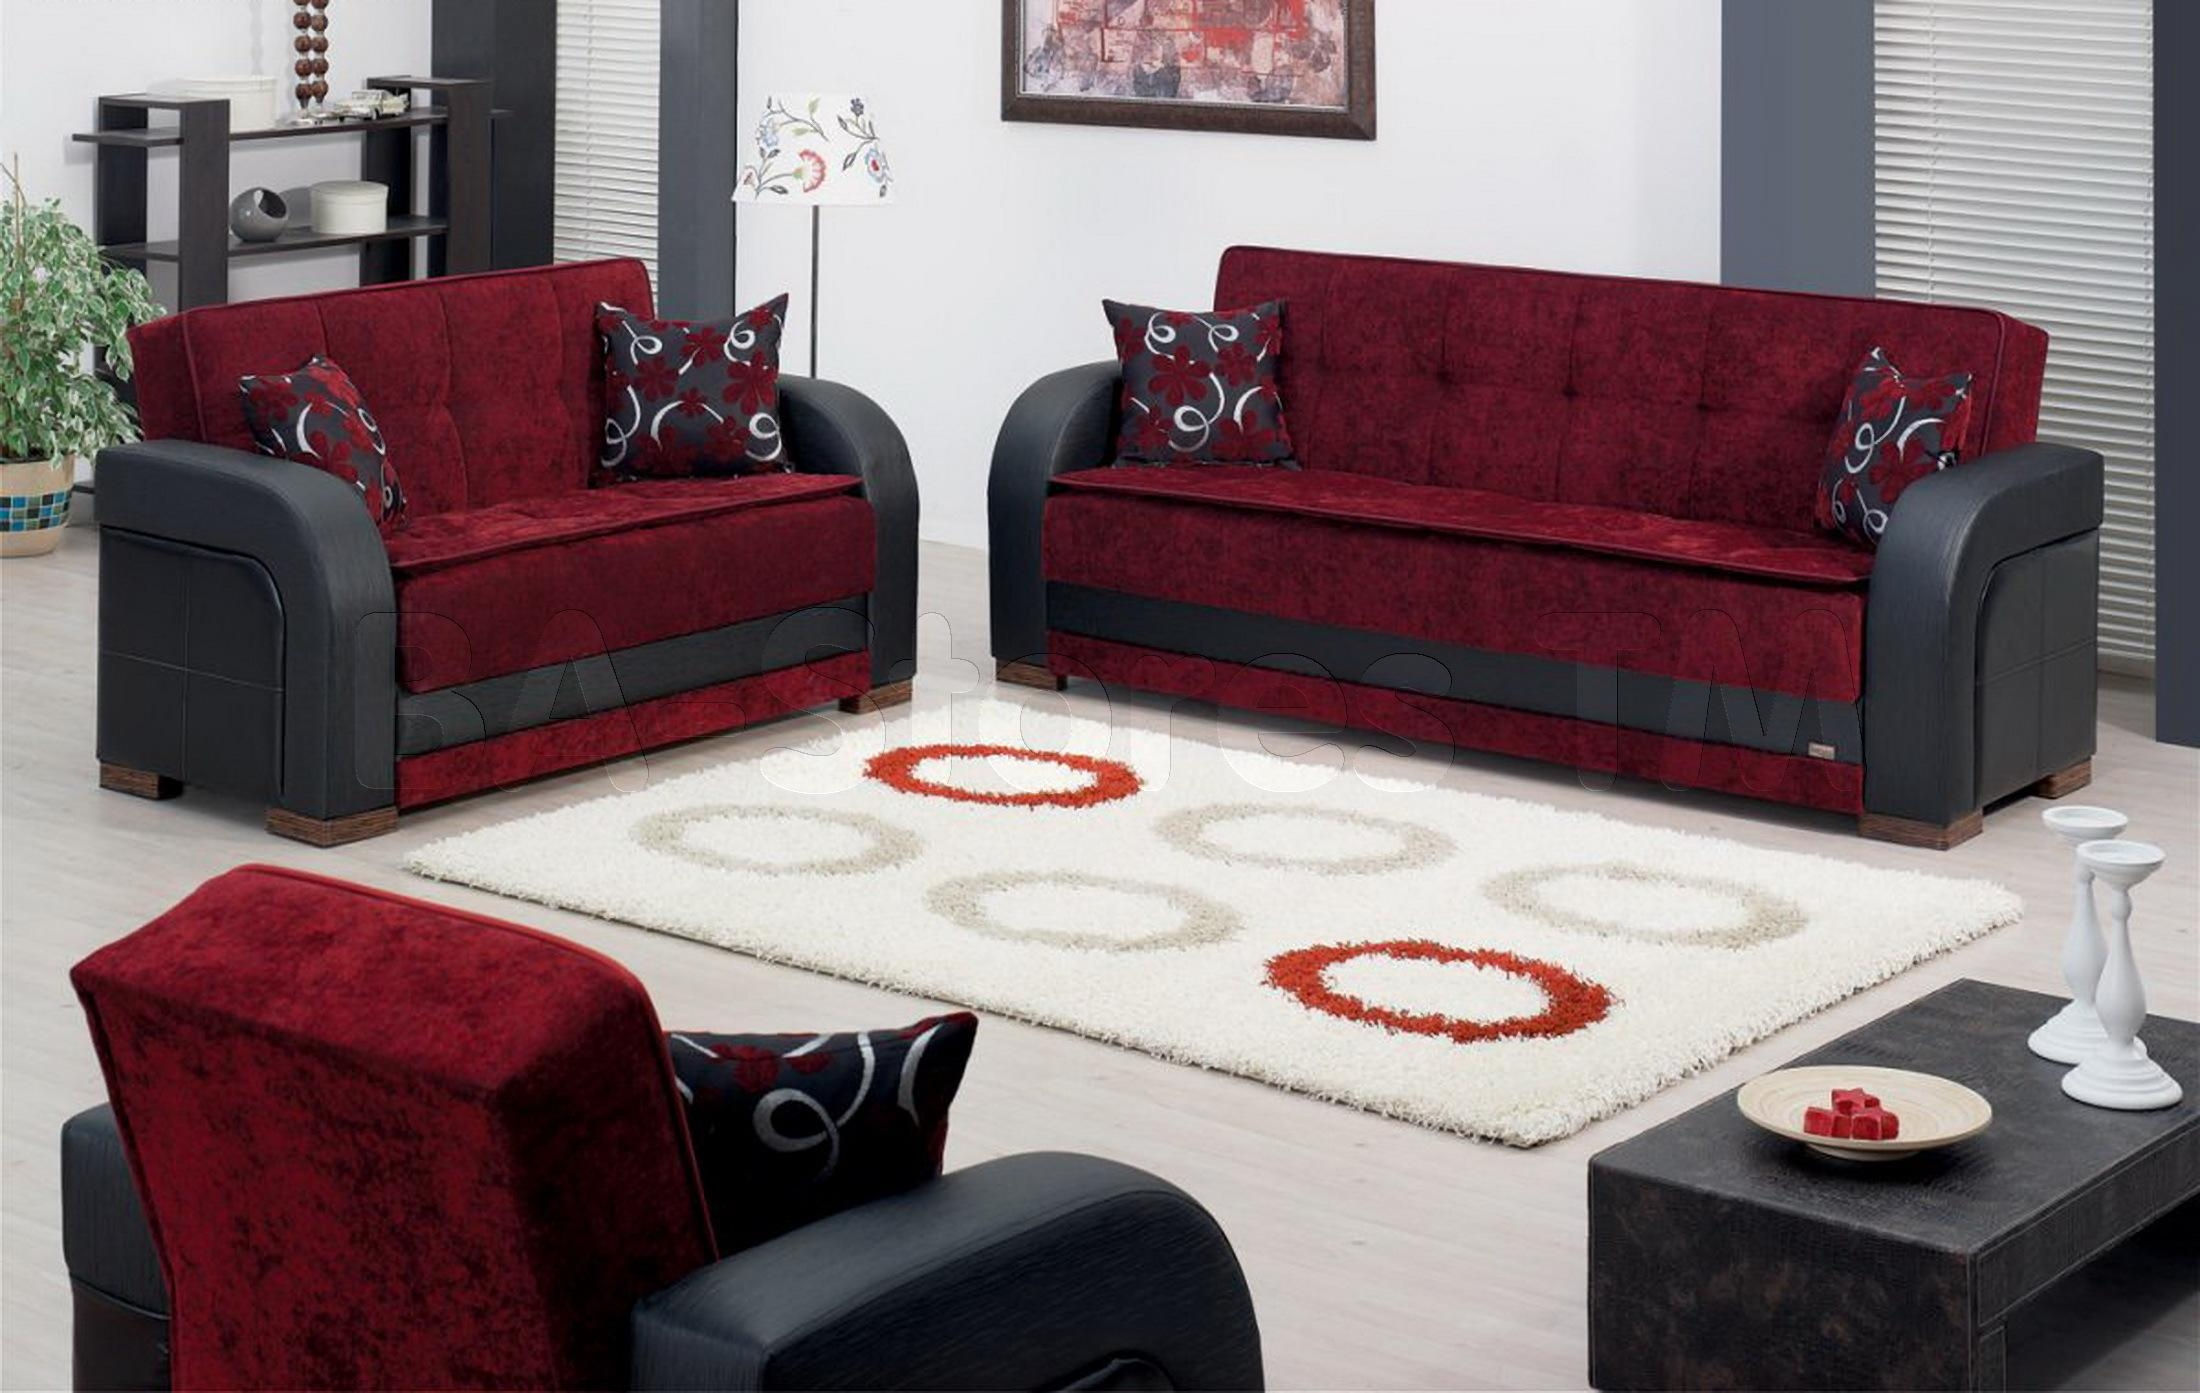 Furniture: Floral Sectional Sofa | Maroon Couches | Burgundy Sofa For Floral Sofas And Chairs (View 16 of 20)